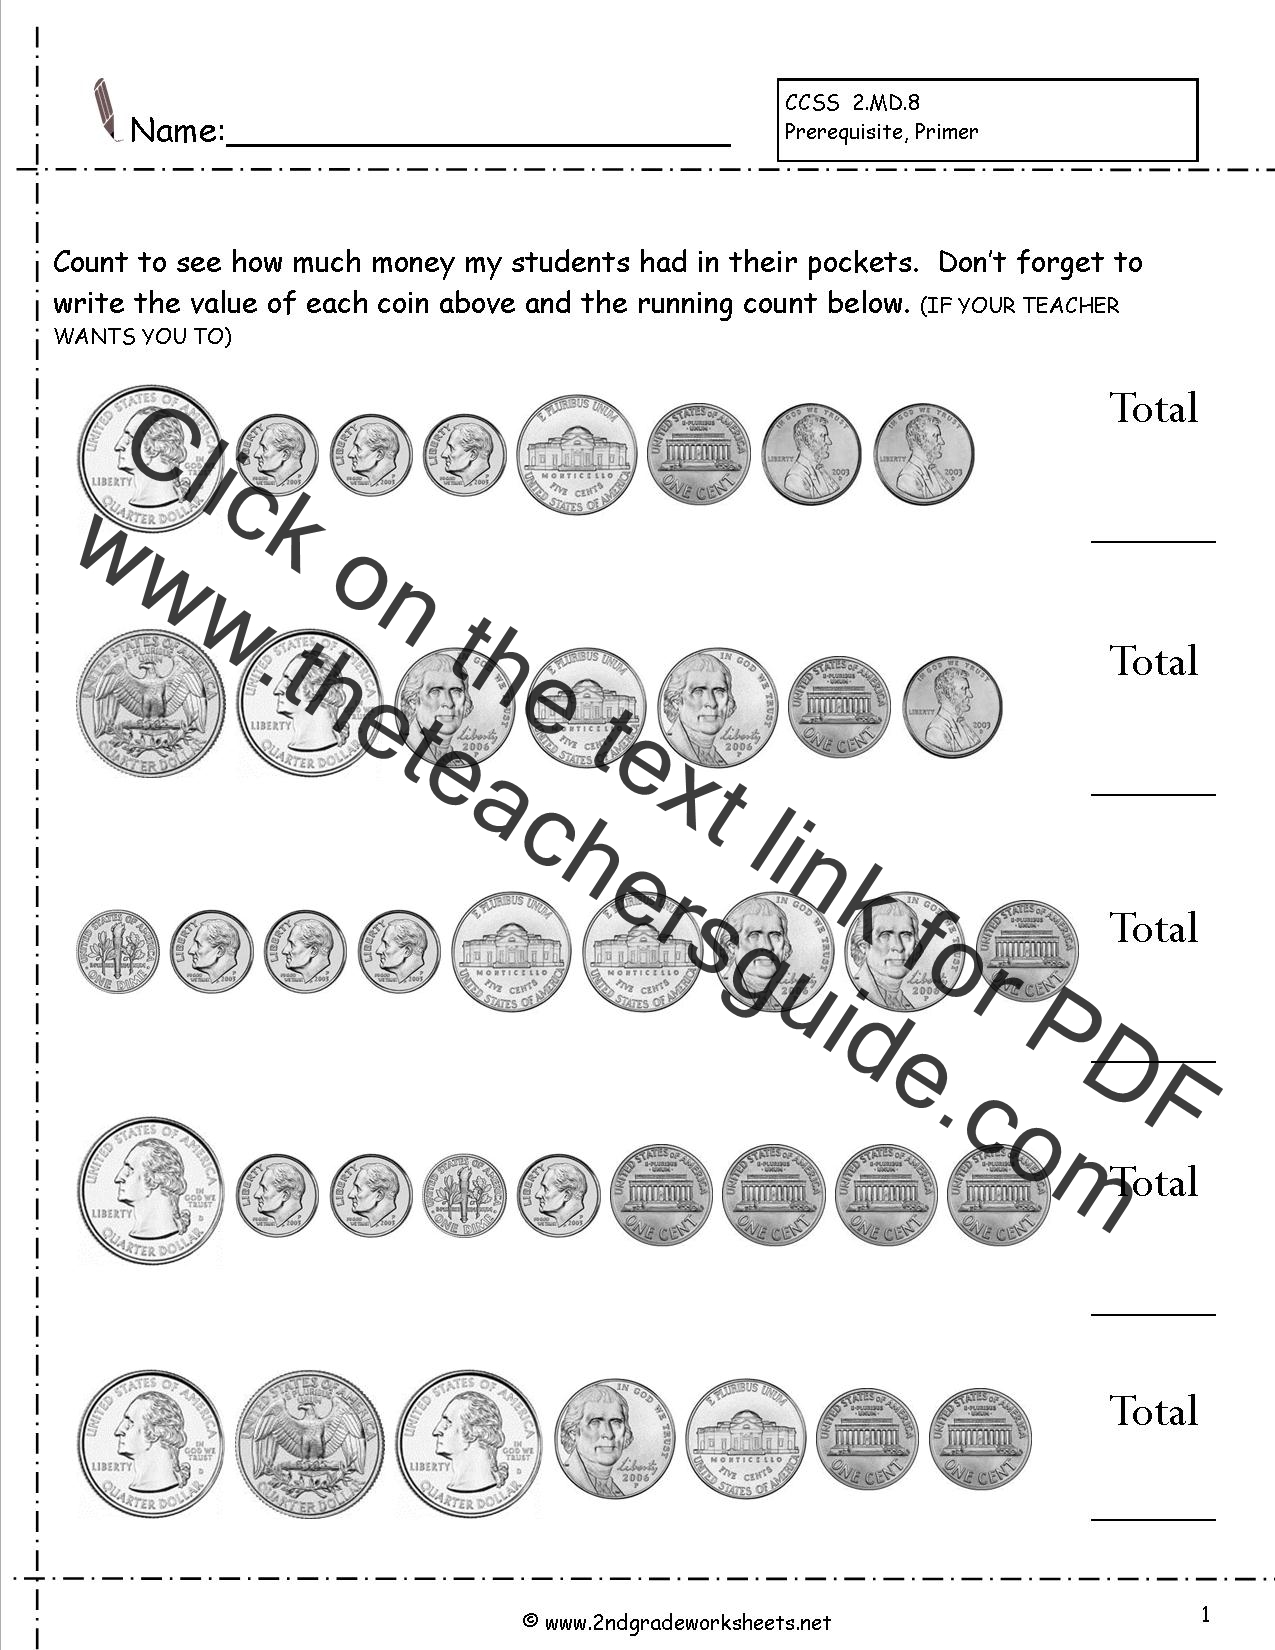 Counting Coins and Money Worksheets and Printouts – Second Grade Worksheets Free